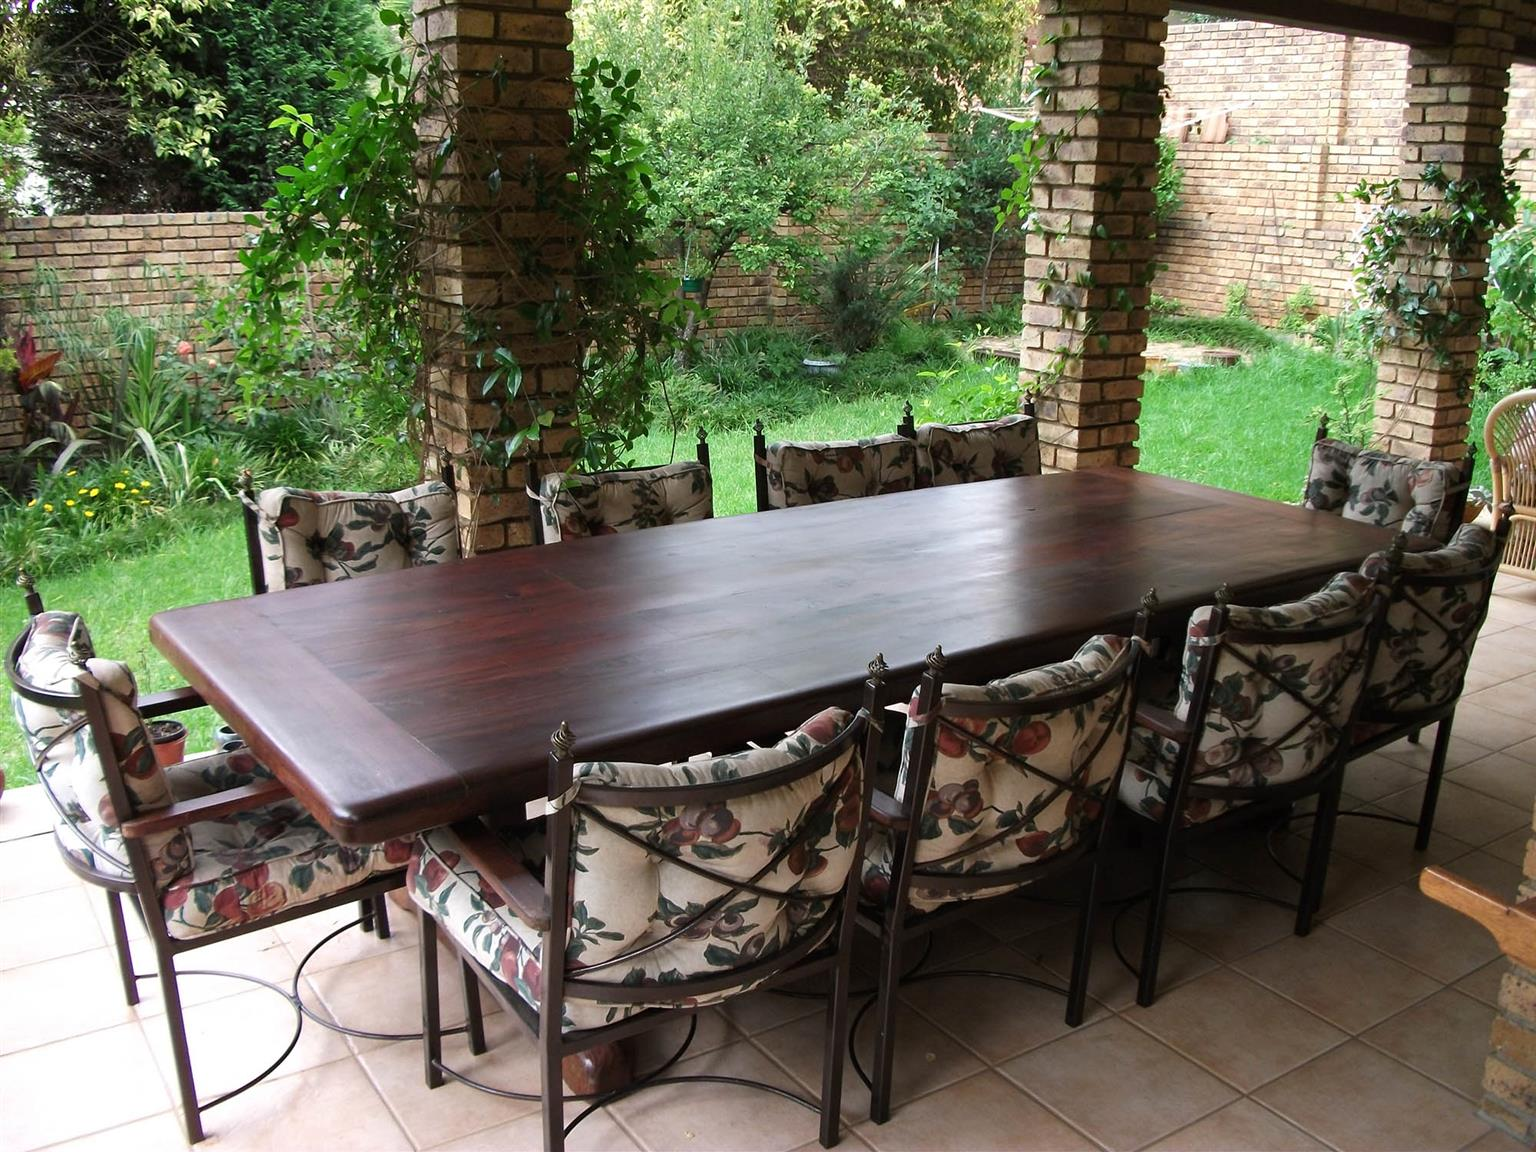 10 Seater Sleeper Rail Wood Table & Chairs